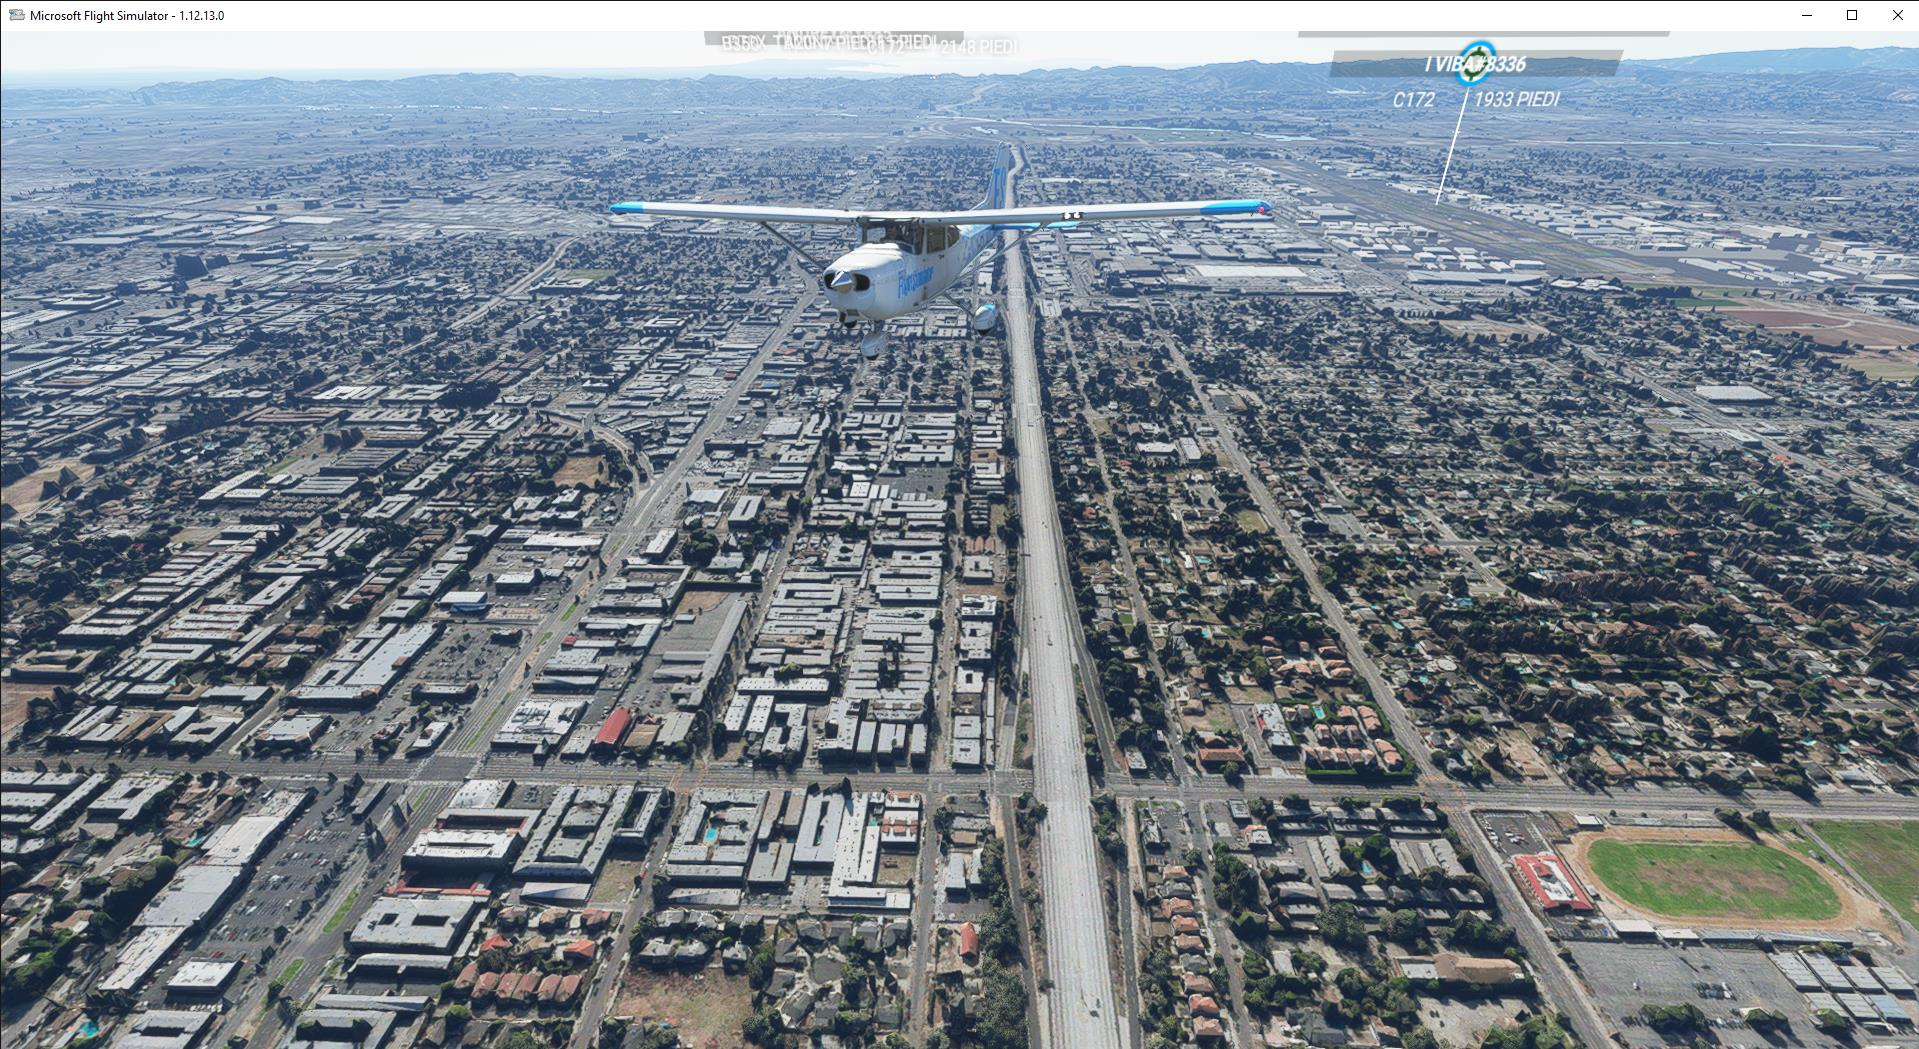 https://vivendobyte.blob.core.windows.net/57784/Microsoft Flight Simulator - 1.12.13.0 12_01_2021 21_20_45.jpg